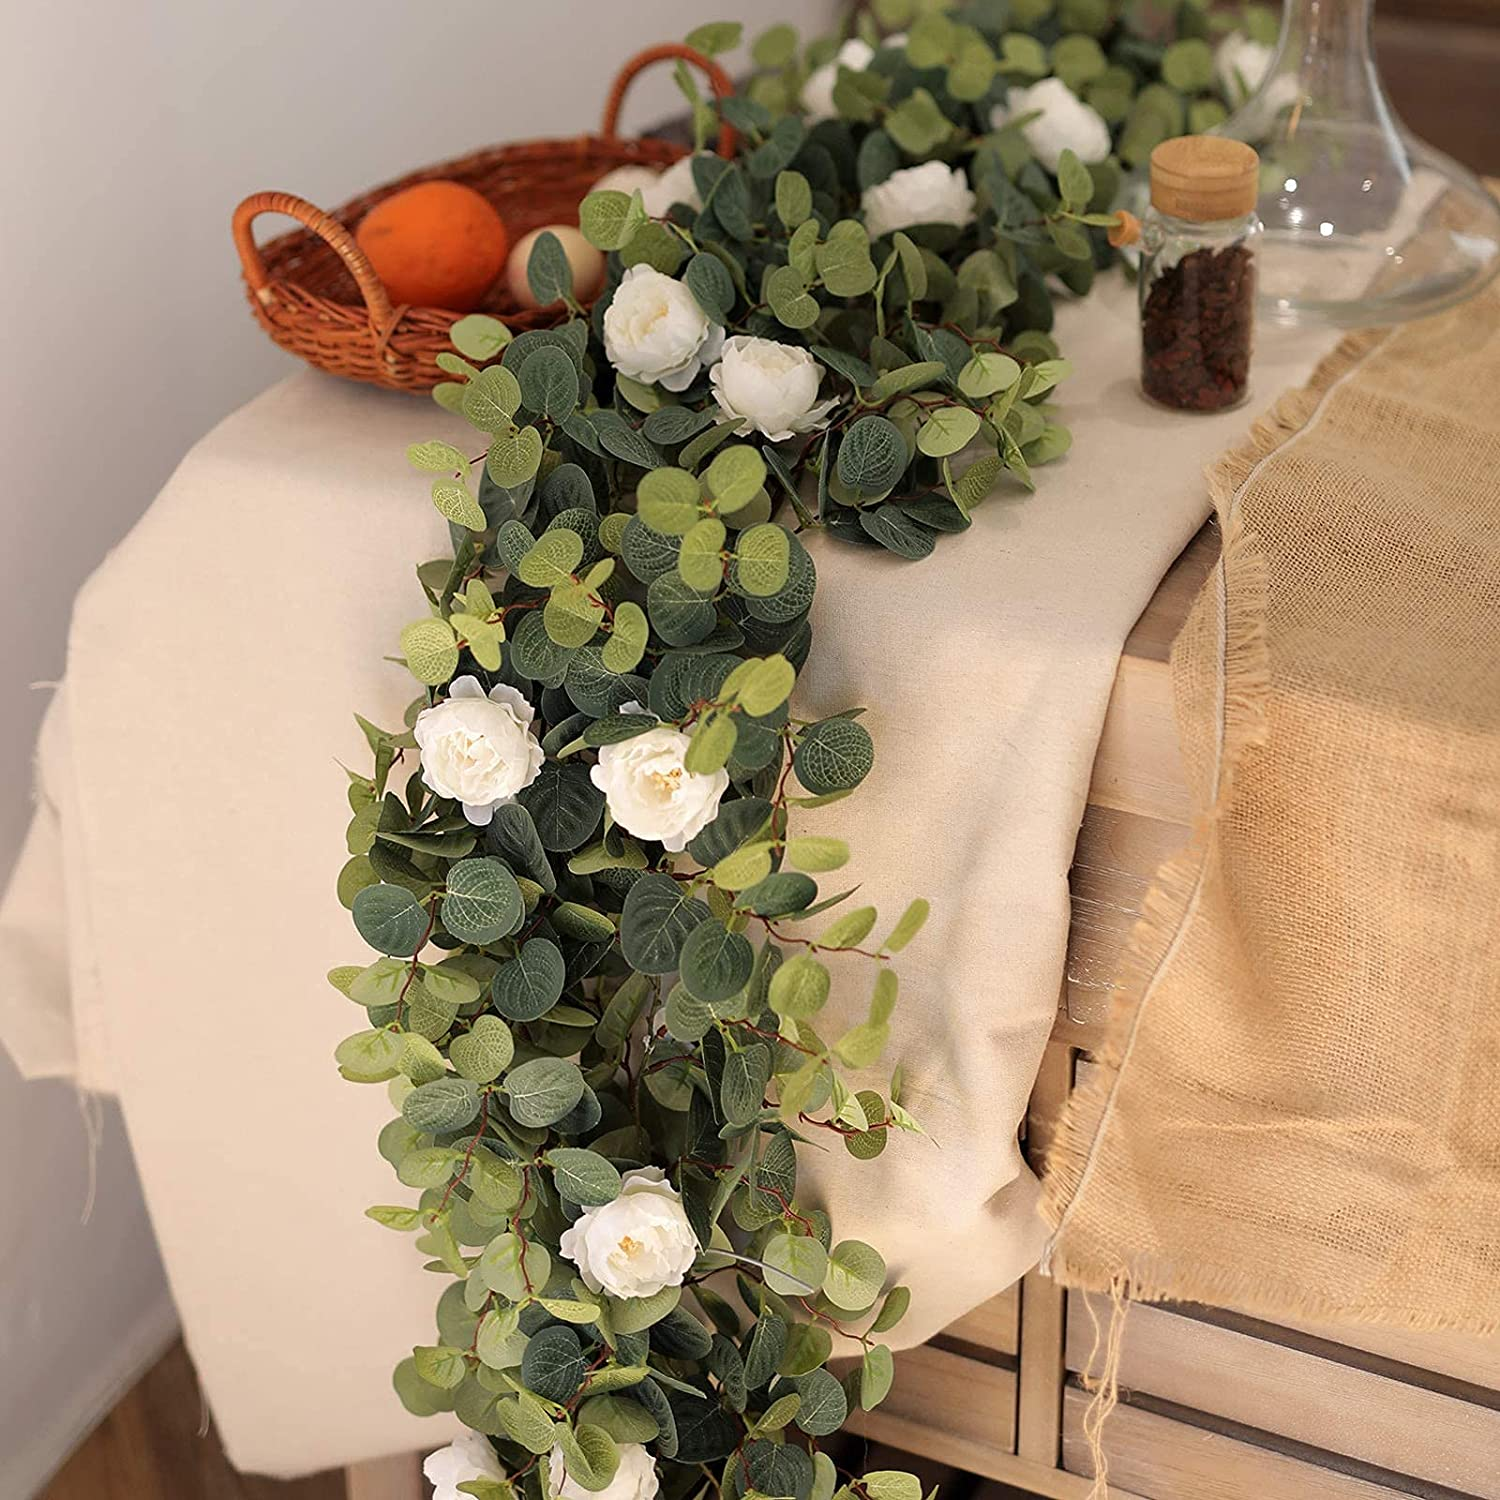 MISSPIN Artificial Flowers Garland Eucalyptus Garland Vintage Fake Flower Peony Vine Greenery Decorative Wall Hanging Plant for Wedding Arch Door Arrangement Party Table Decor (White, 1)